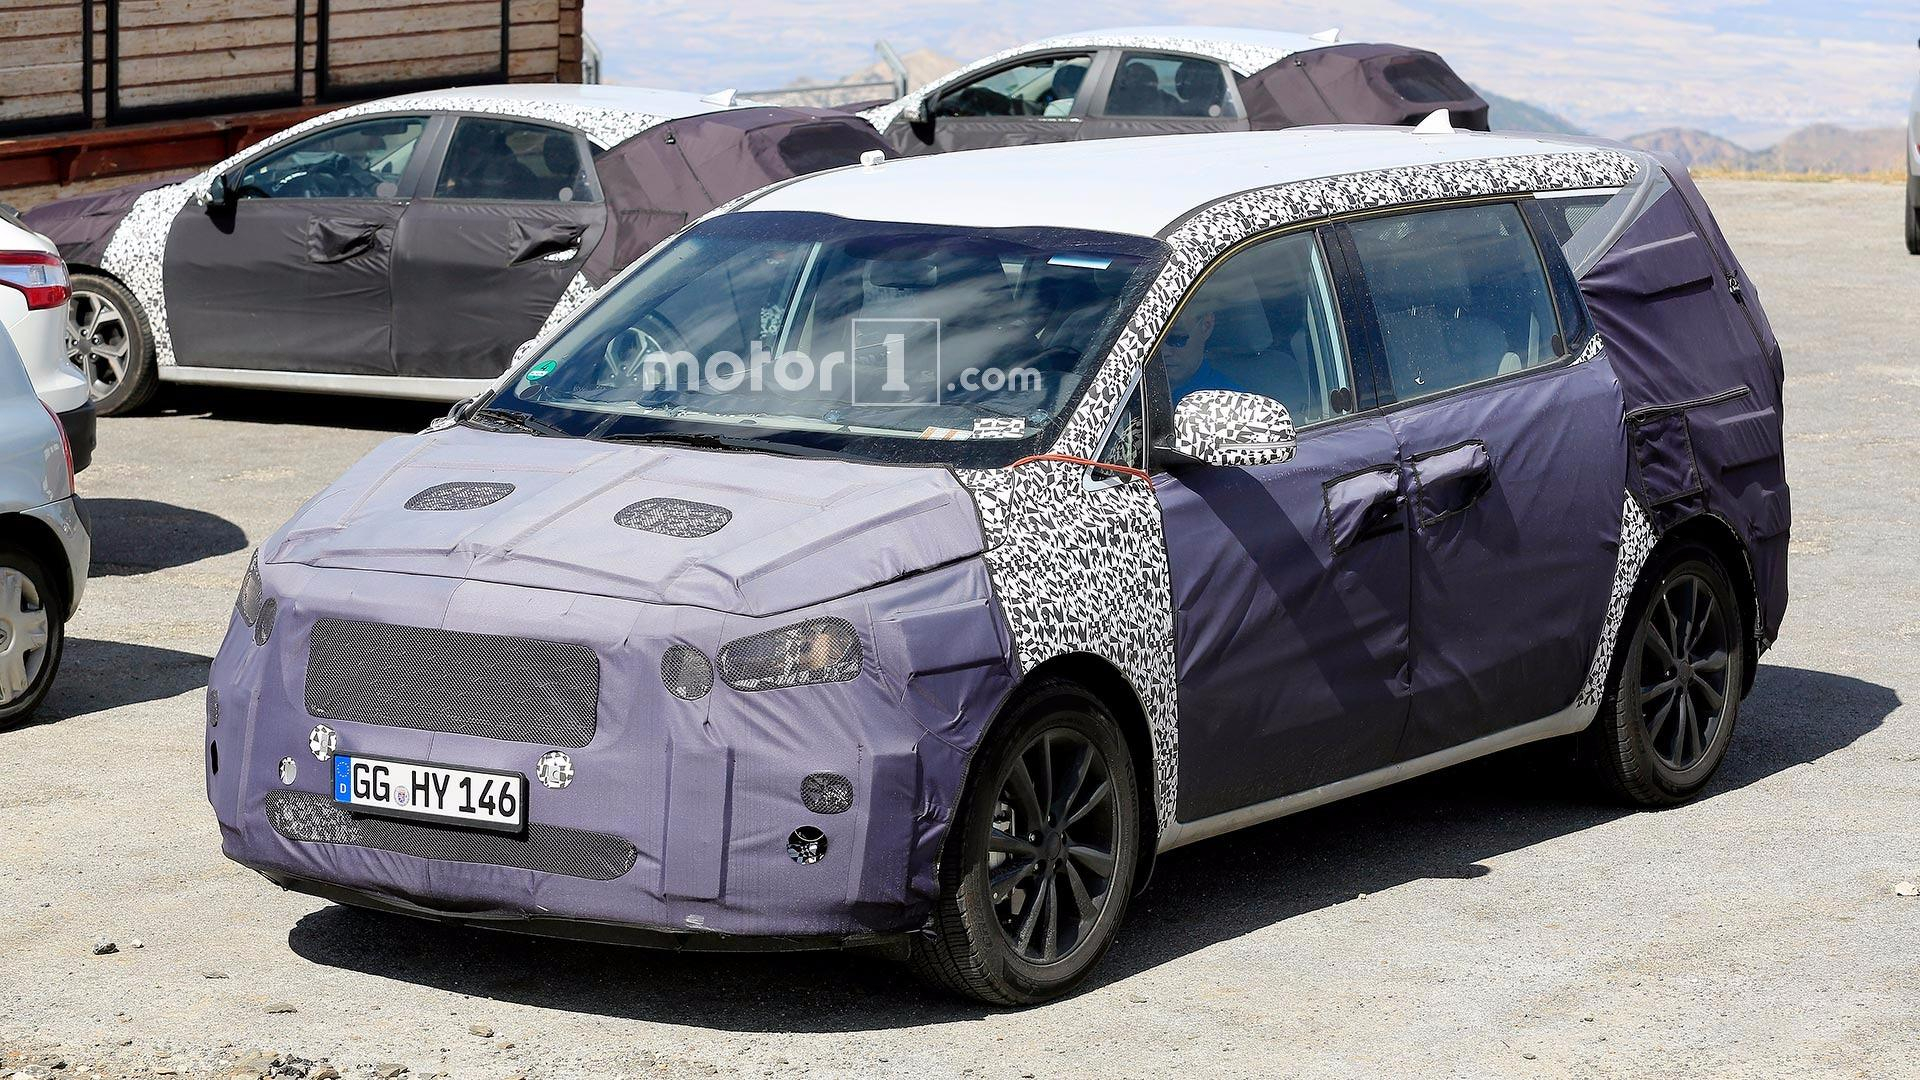 Refreshed Kia Sedona Spied Trying To Keep Hidden Under Heavy - 2022 Kia Sedona Ratings Performance, Transmission Options